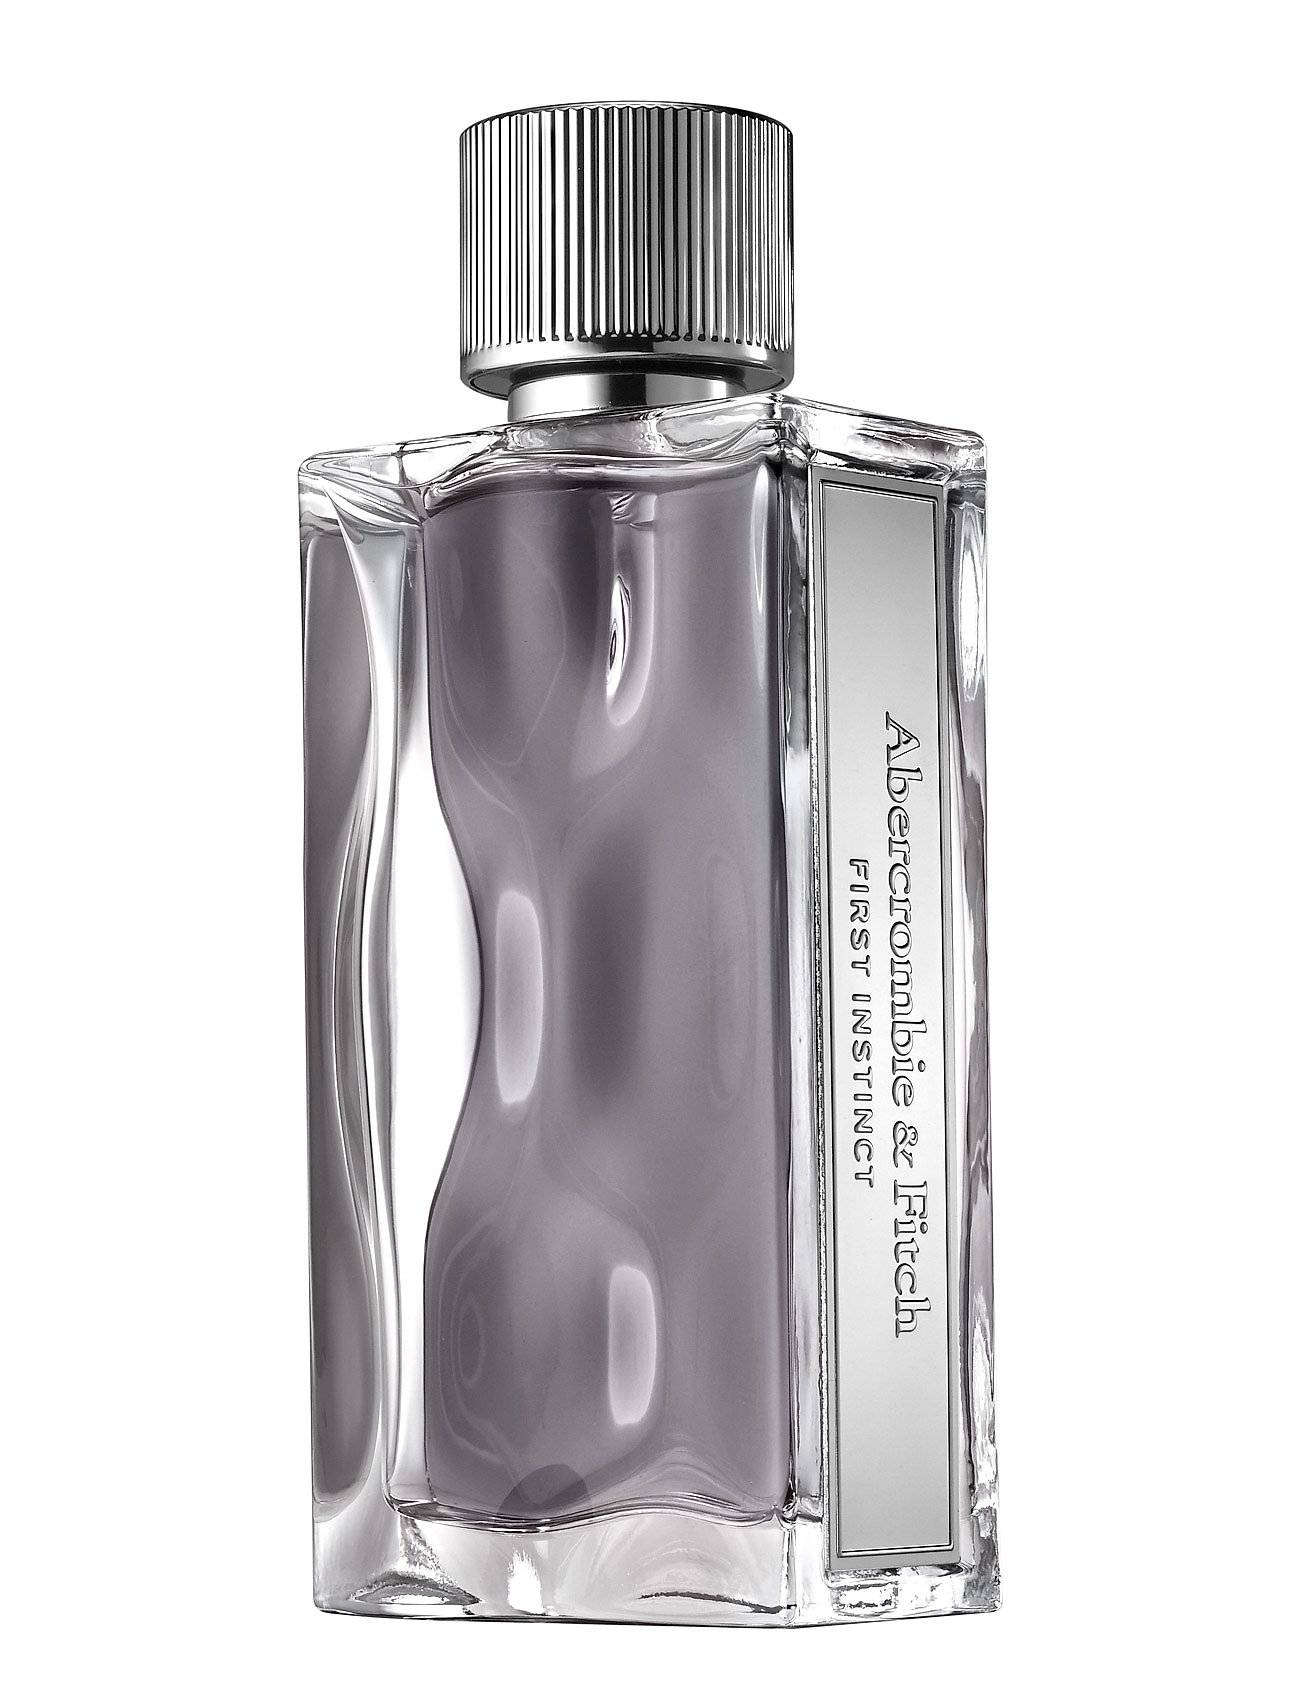 Abercrombie & Fitch First Instinct For Him Eau De Toilette